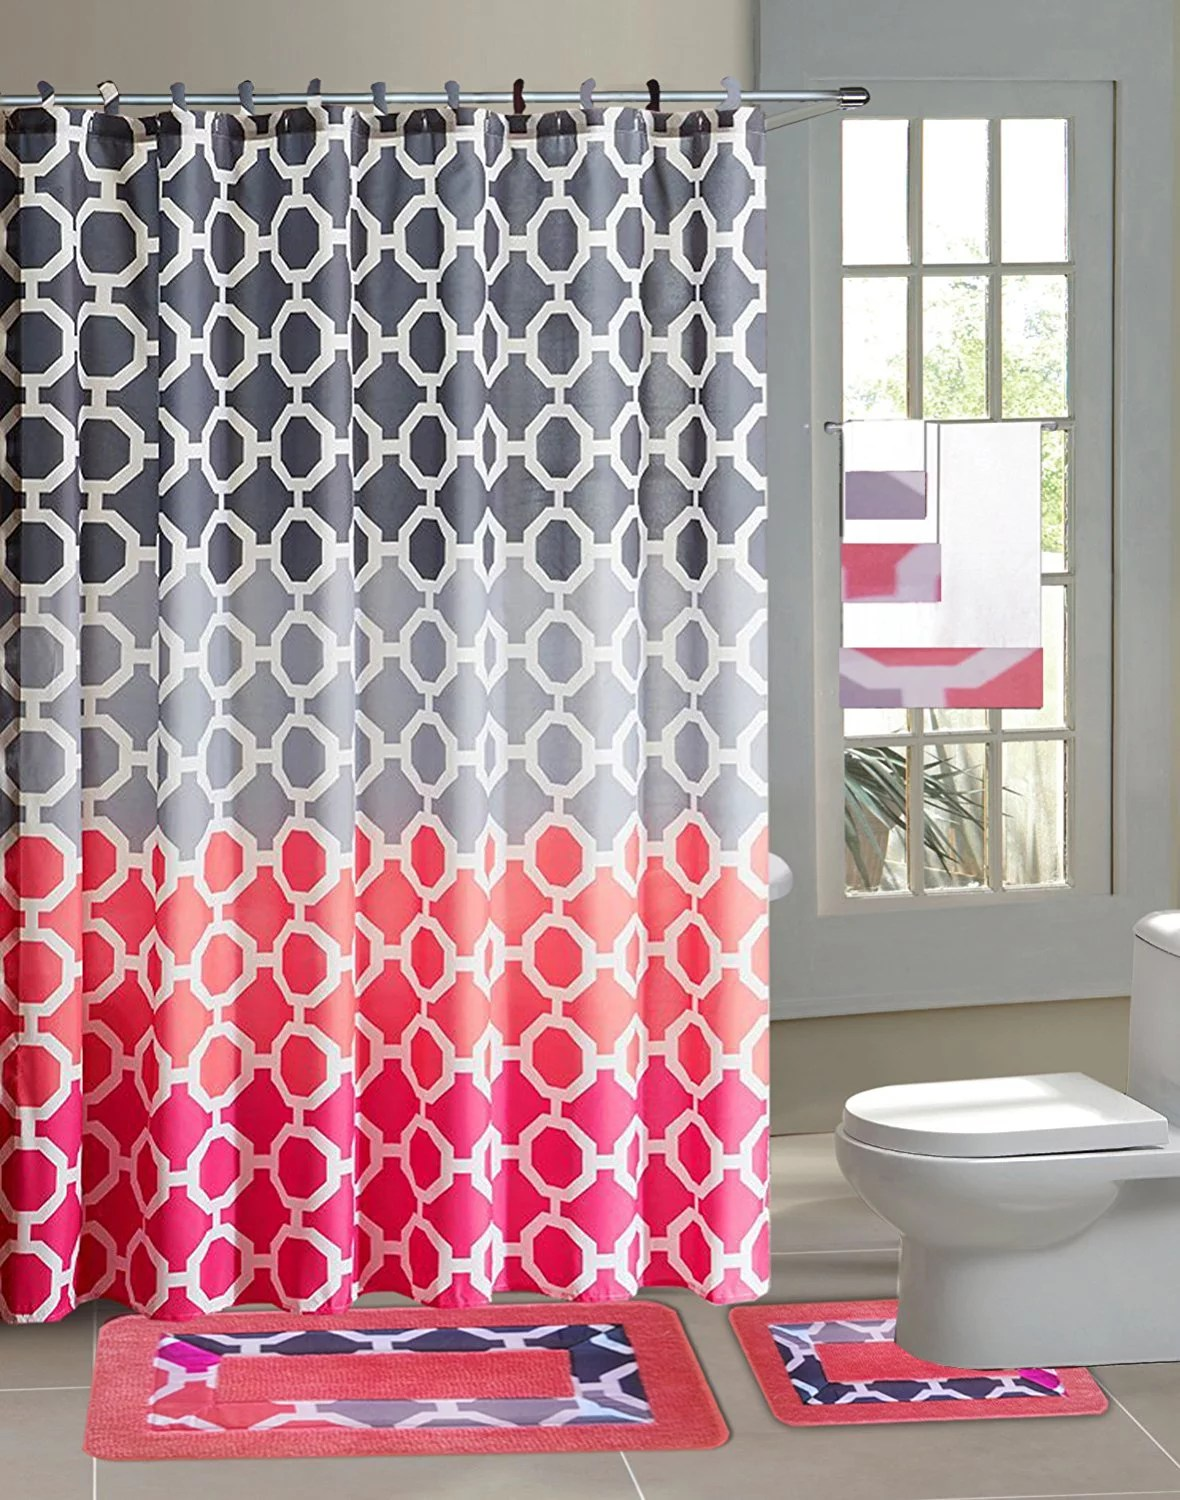 hajar pink gray chains 15 piece bathroom accessory set 2 bath mats shower curtain 12 fabric covered rings